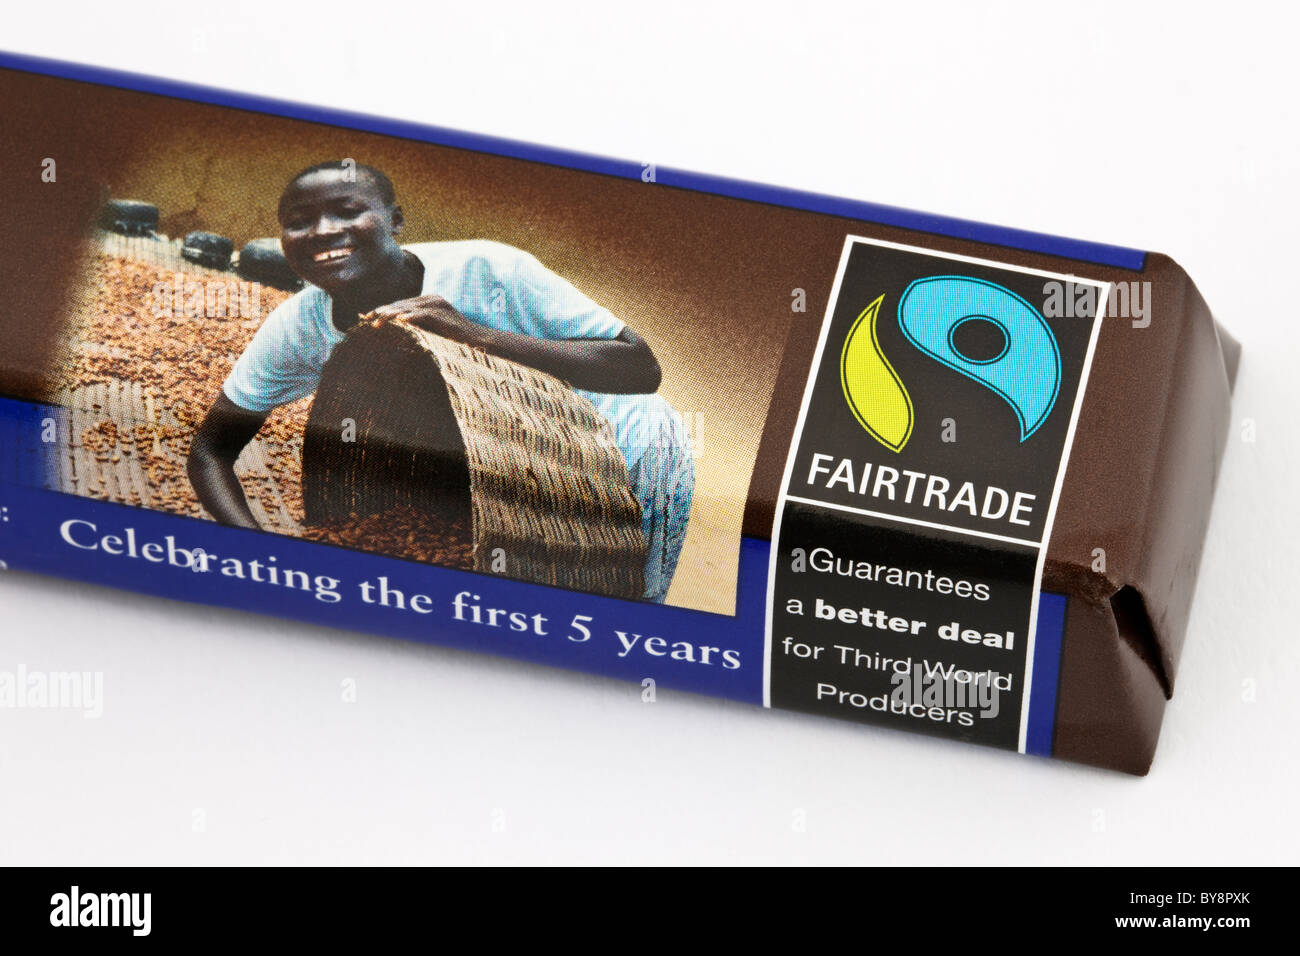 Fair Trade Chocolate Stock Photos & Fair Trade Chocolate Stock ...